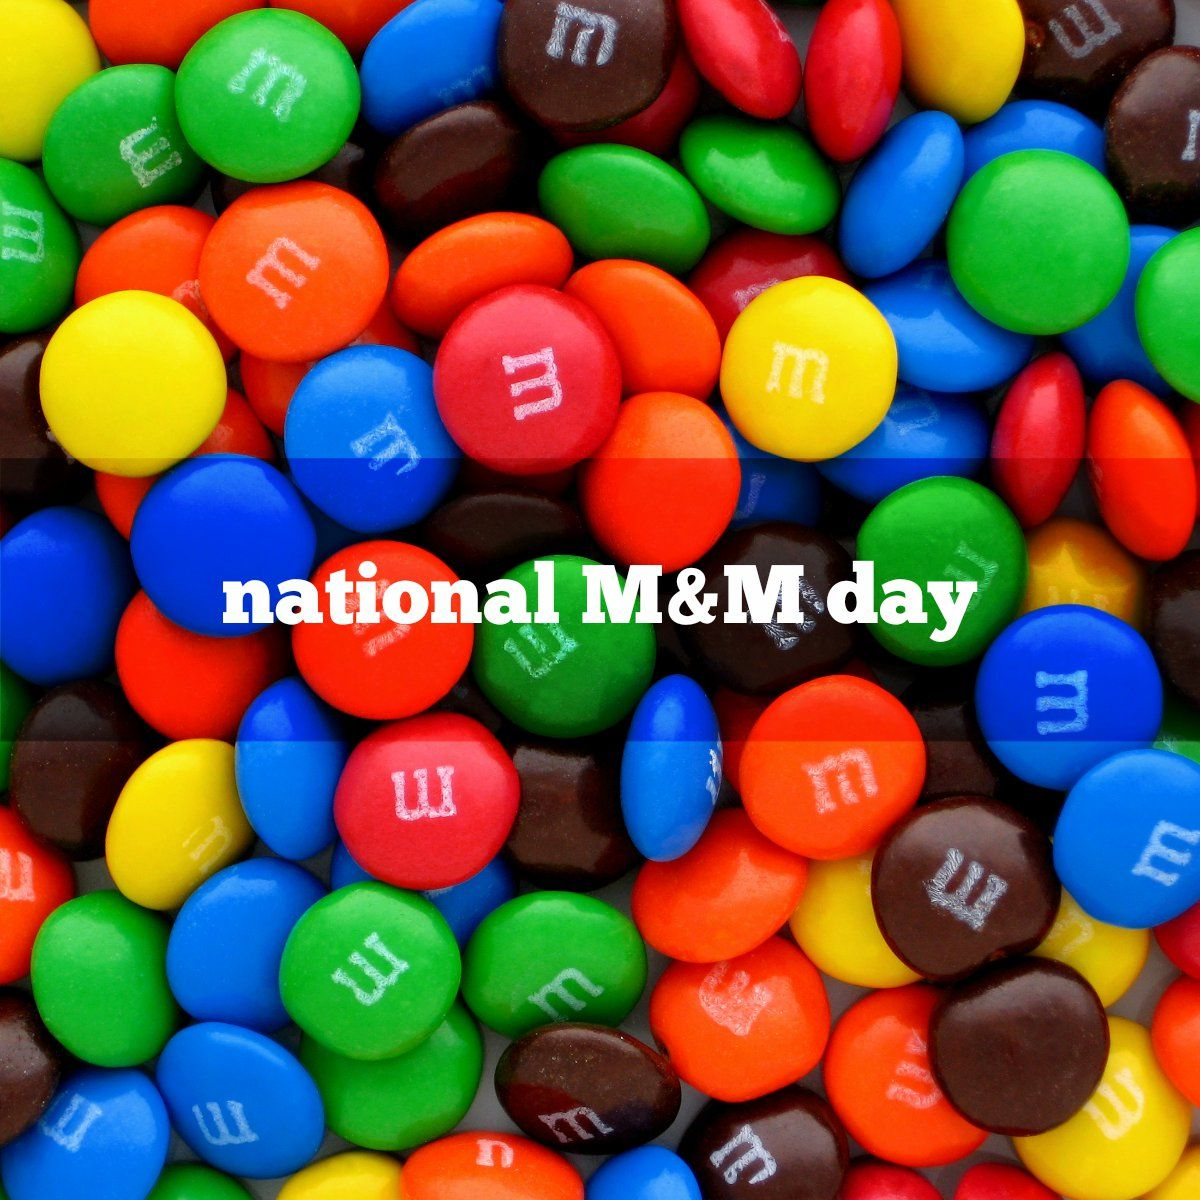 October 13th Is National M&M Day!